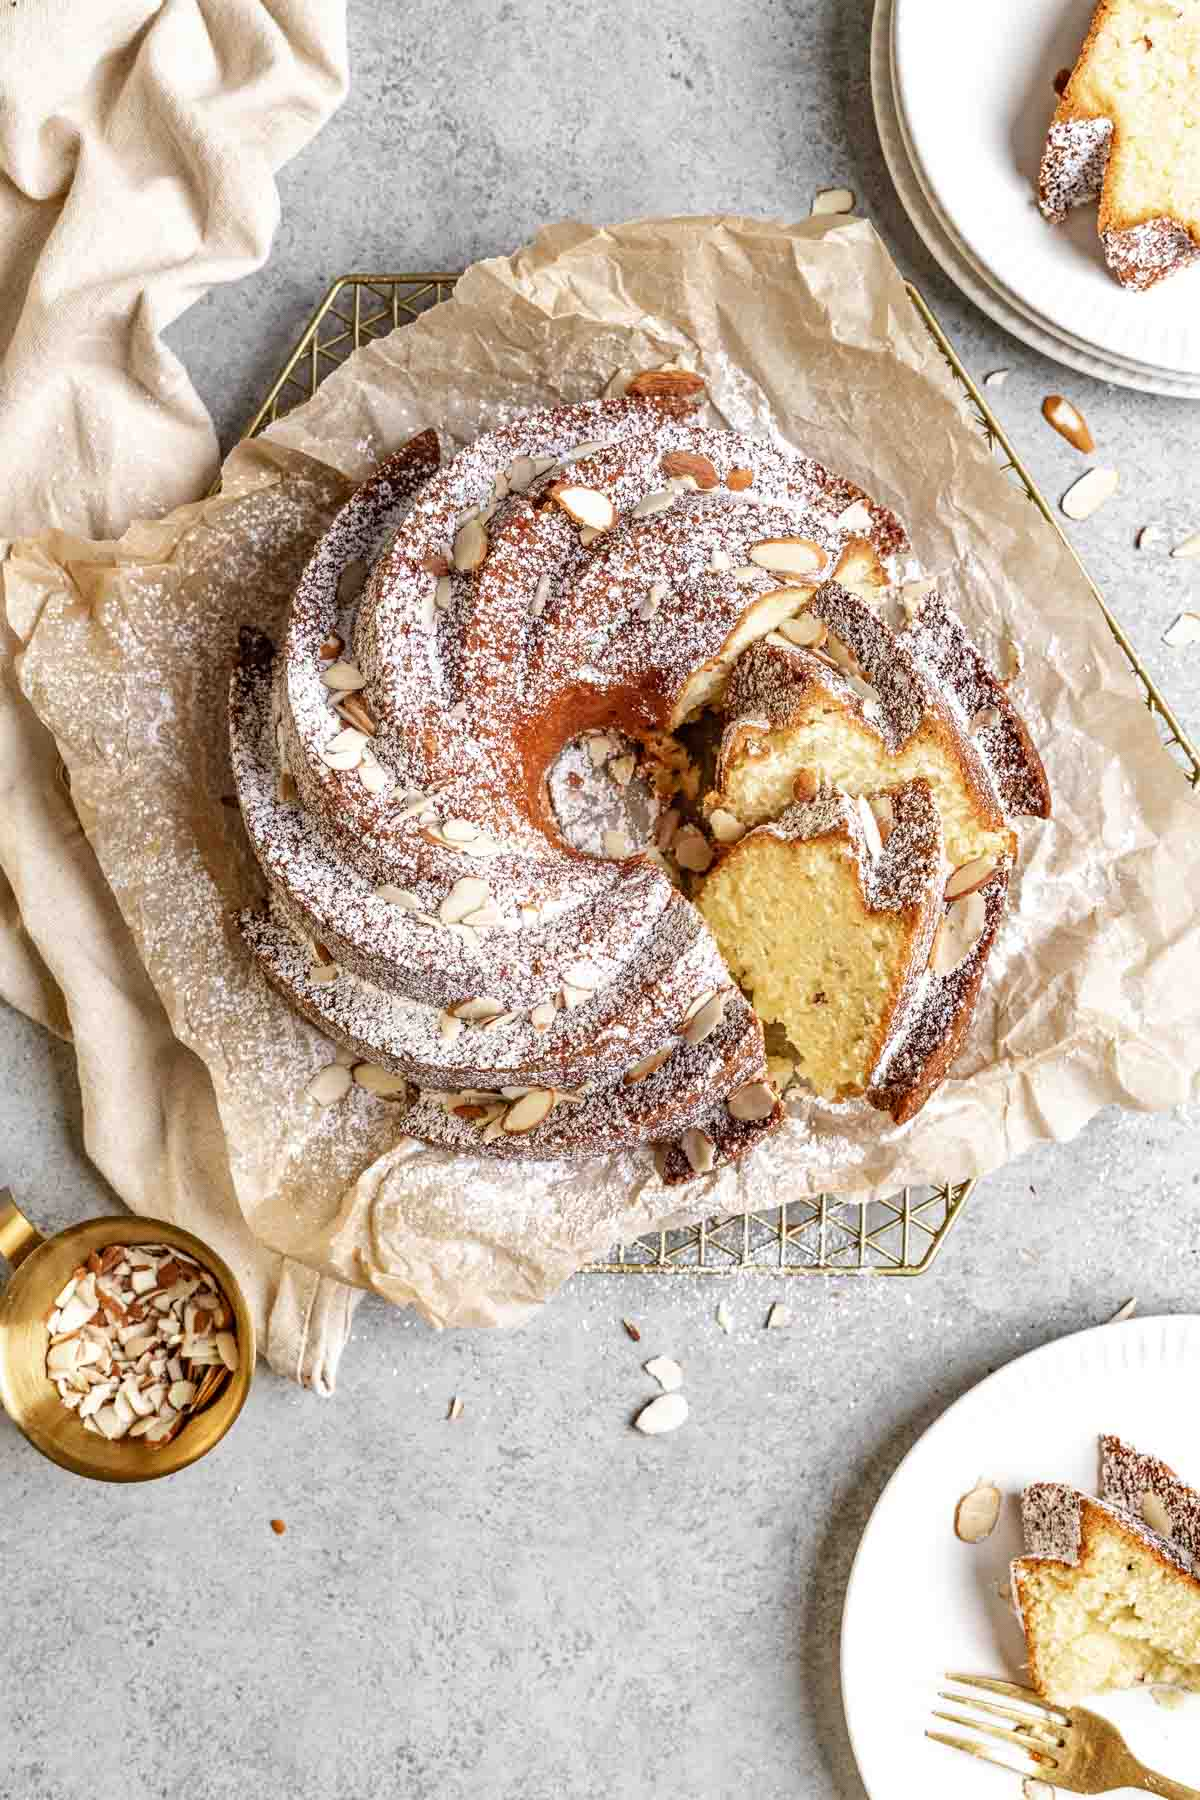 Almond Bundt Cake dusted with powdered sugar and sliced on parchment